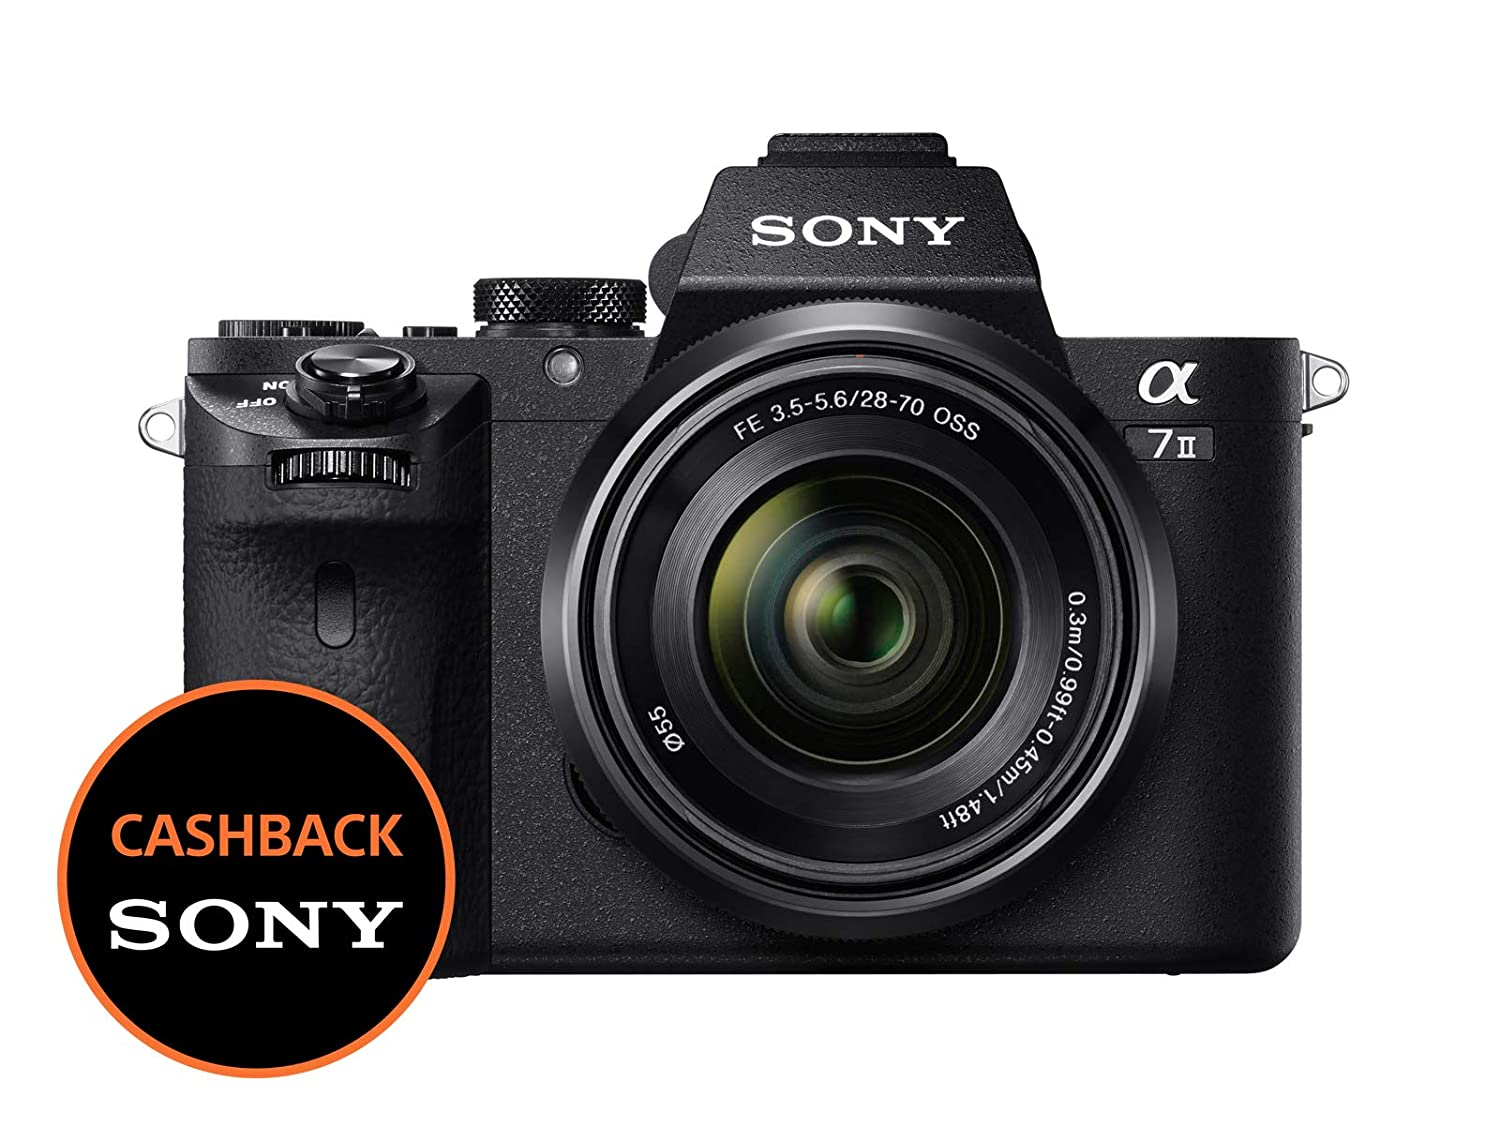 Sony Alpha 7M2K Kit Fotocamera Digitale Mirrorless Full-Frame con Obiettivo Intercambiabile SEL 28-70 mm, Sensore CMOS Exmor Full-Frame da 24.3 MP, Stabilizzazione Integrata a 5 Assi, Nero